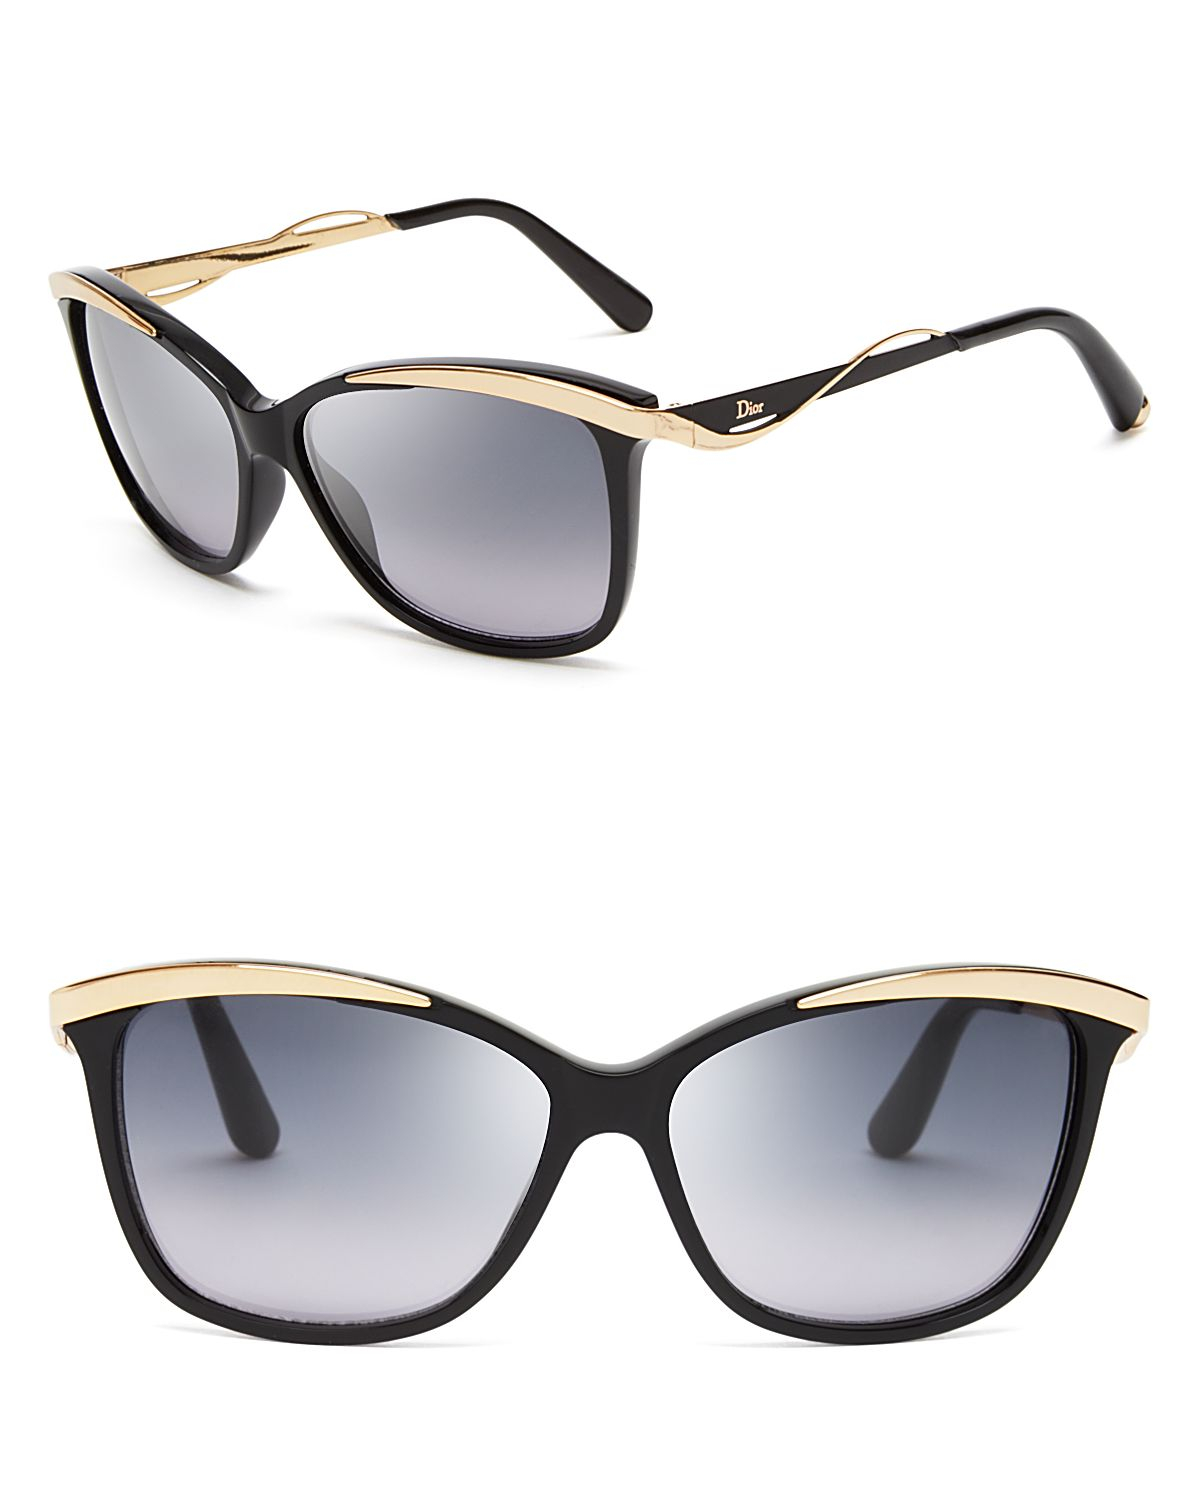 Glasses Metal Frame Dior : Dior Metaleyes Cat Eye Sunglasses in Gold (Black/Rose Gold ...